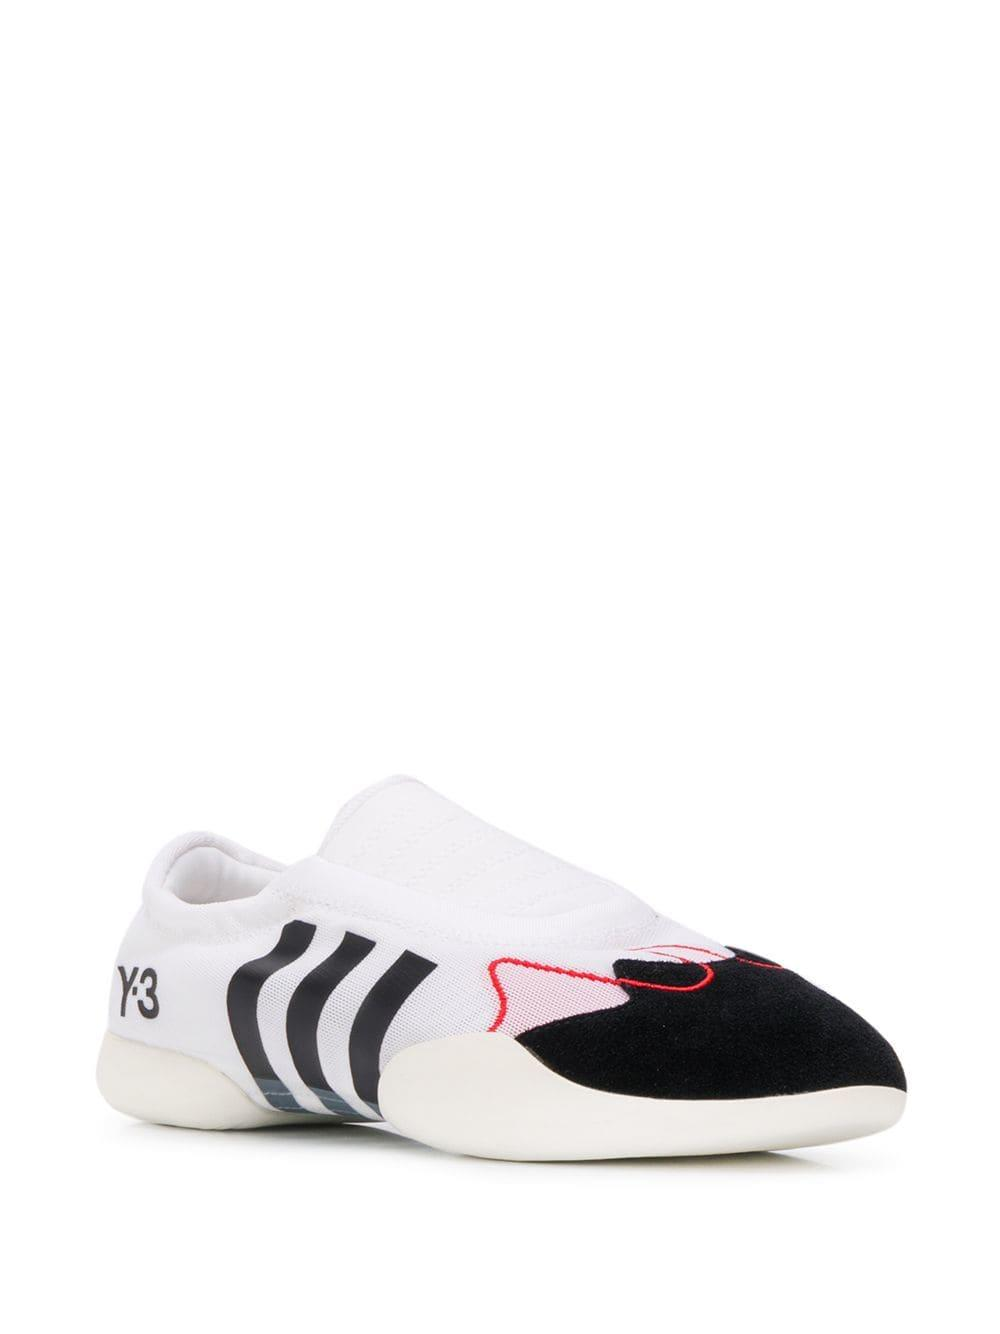 brand new b6ebd ca0f5 Y-3 Knitted Sneakers in White - Lyst